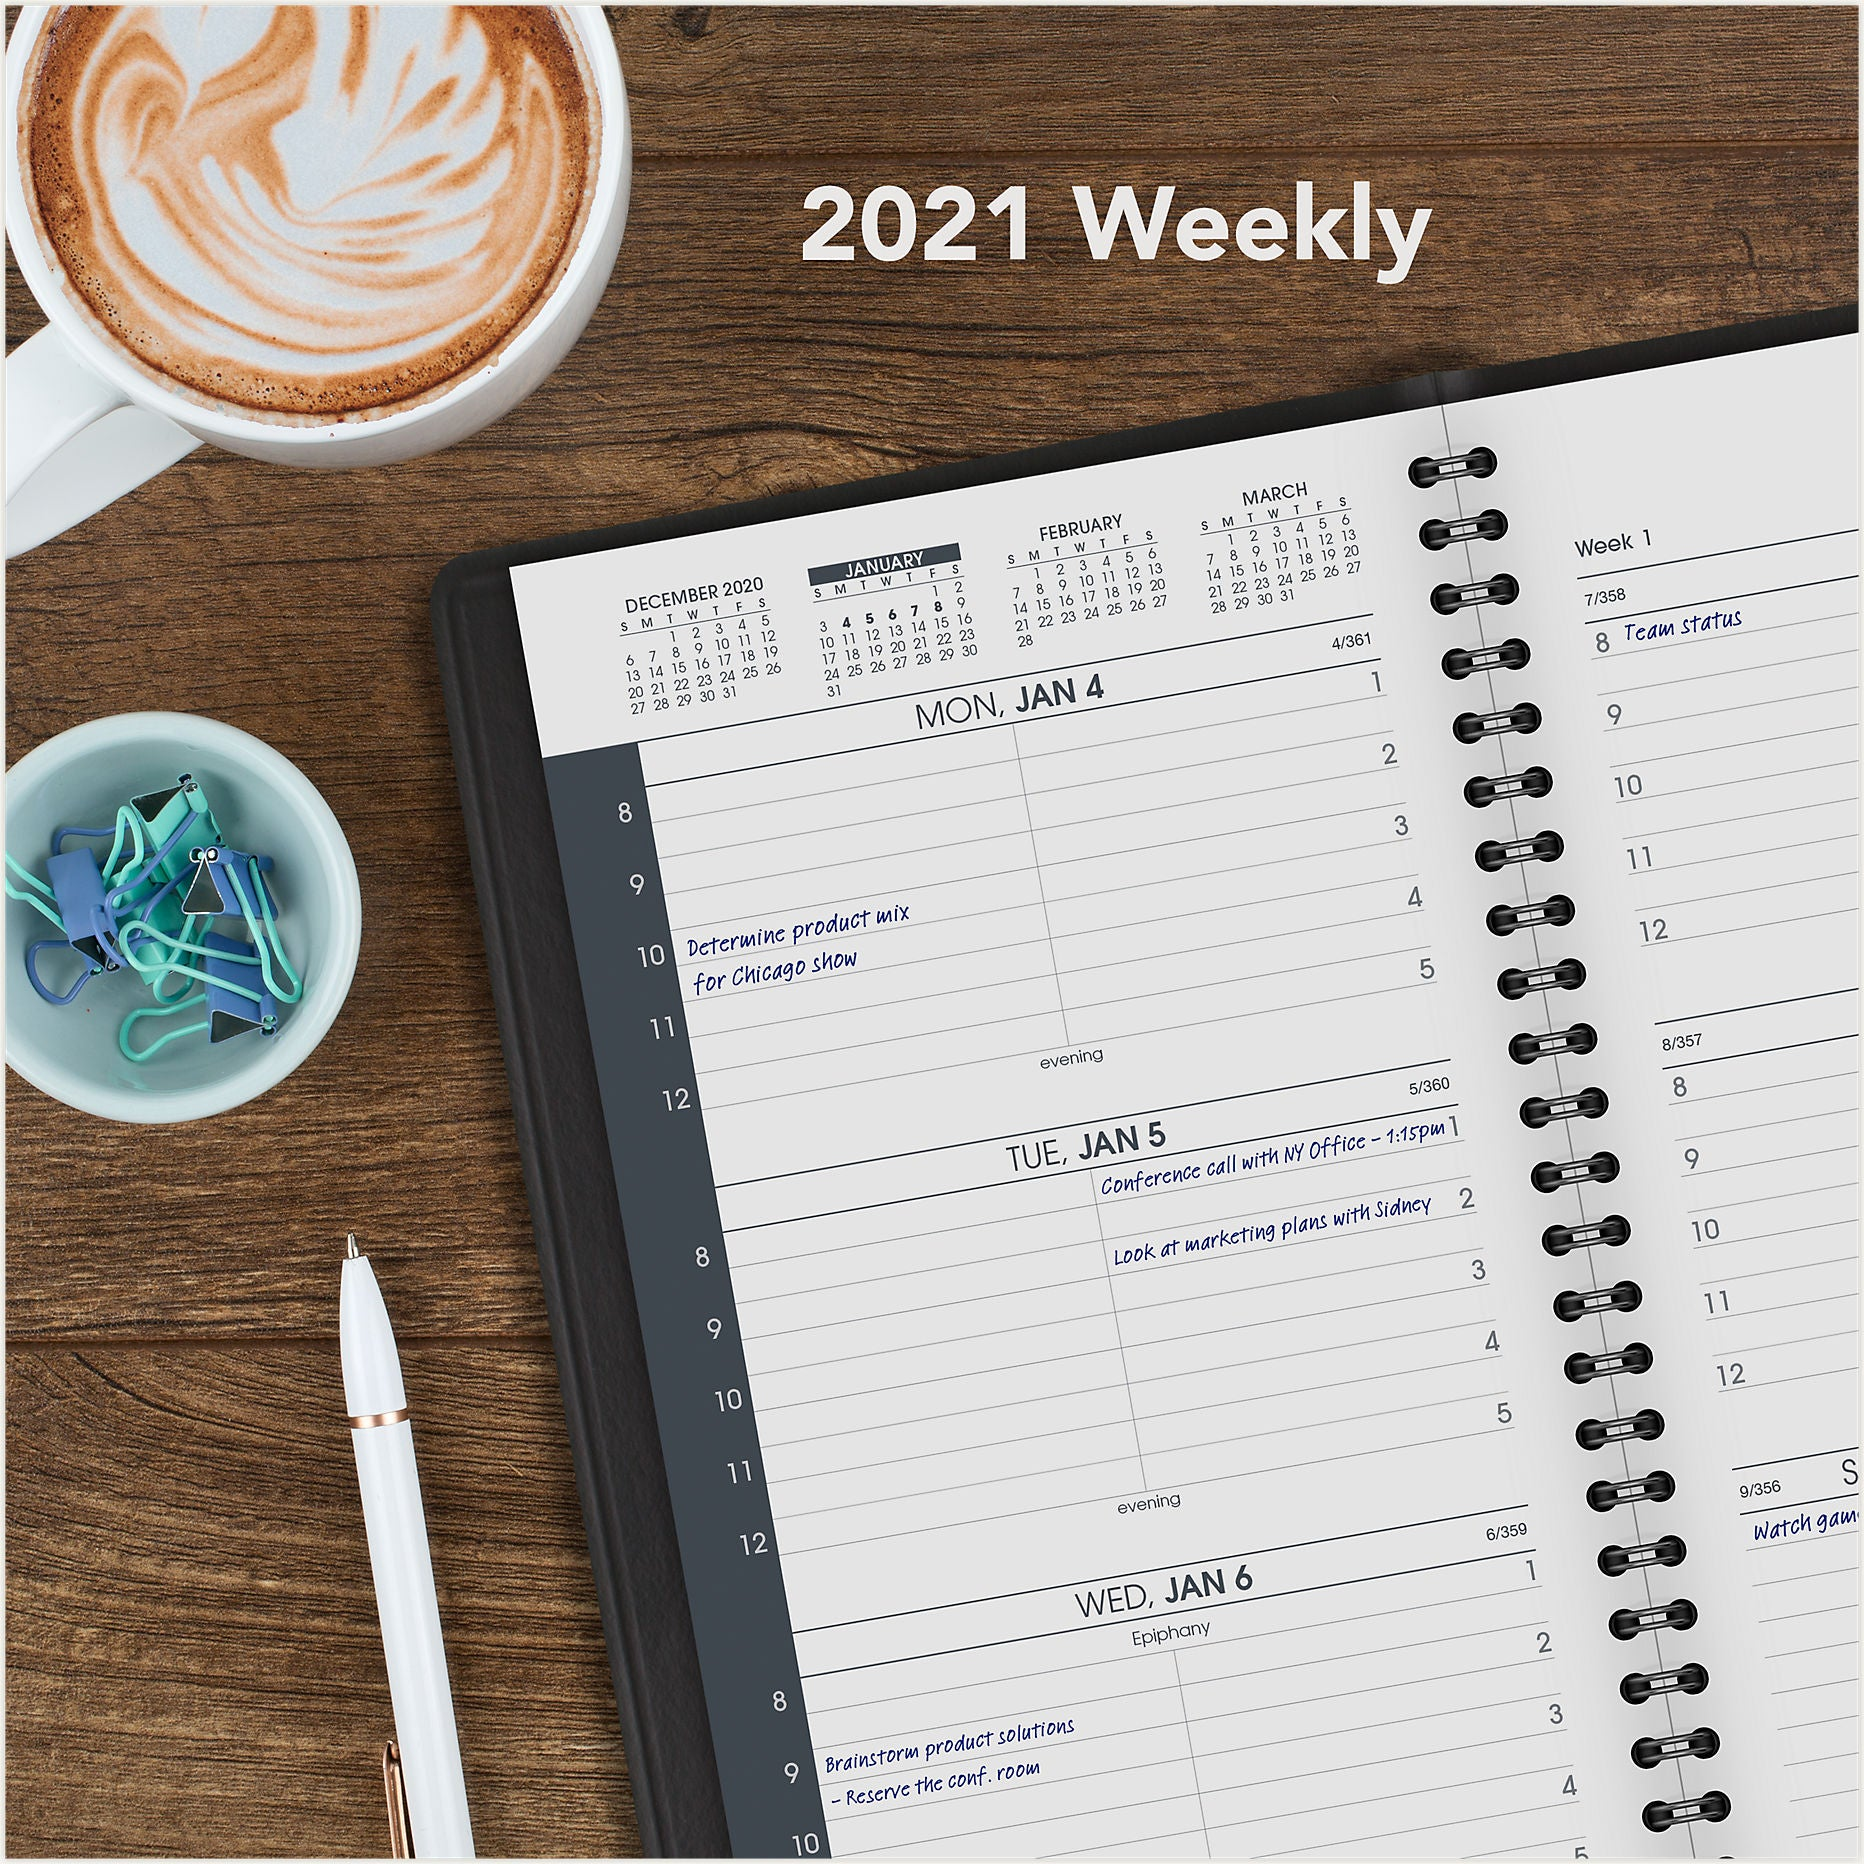 70-075-05 WEEKLY AT A GLANCE CALENDARS 2021